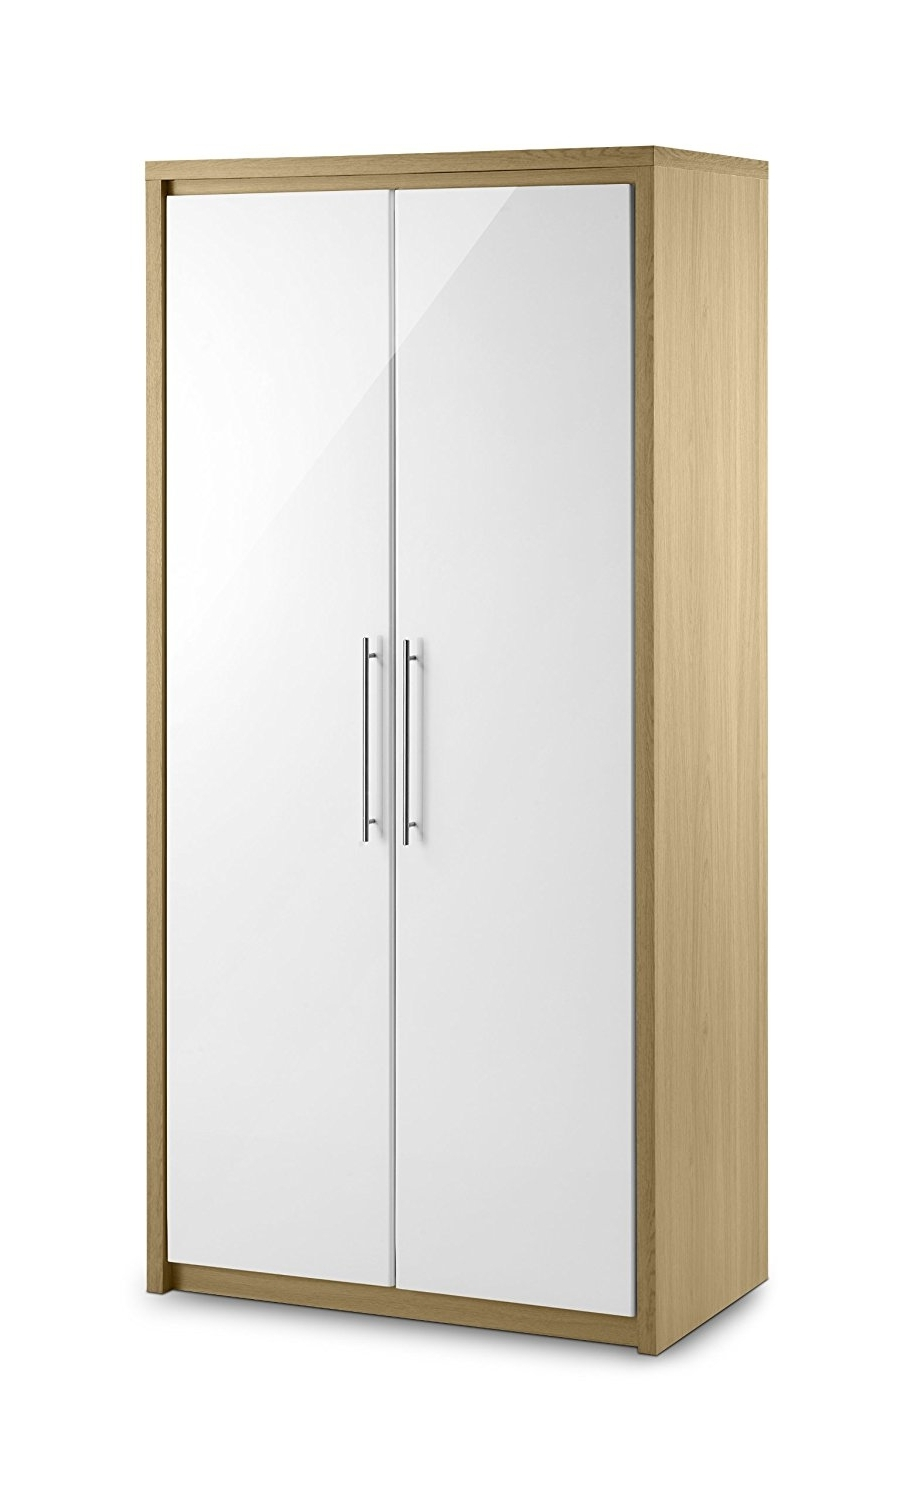 Most Current Julian Bowen Stockholm 2 Door All Hanging Wardrobe, Oak/white For Cheap 2 Door Wardrobes (View 12 of 15)